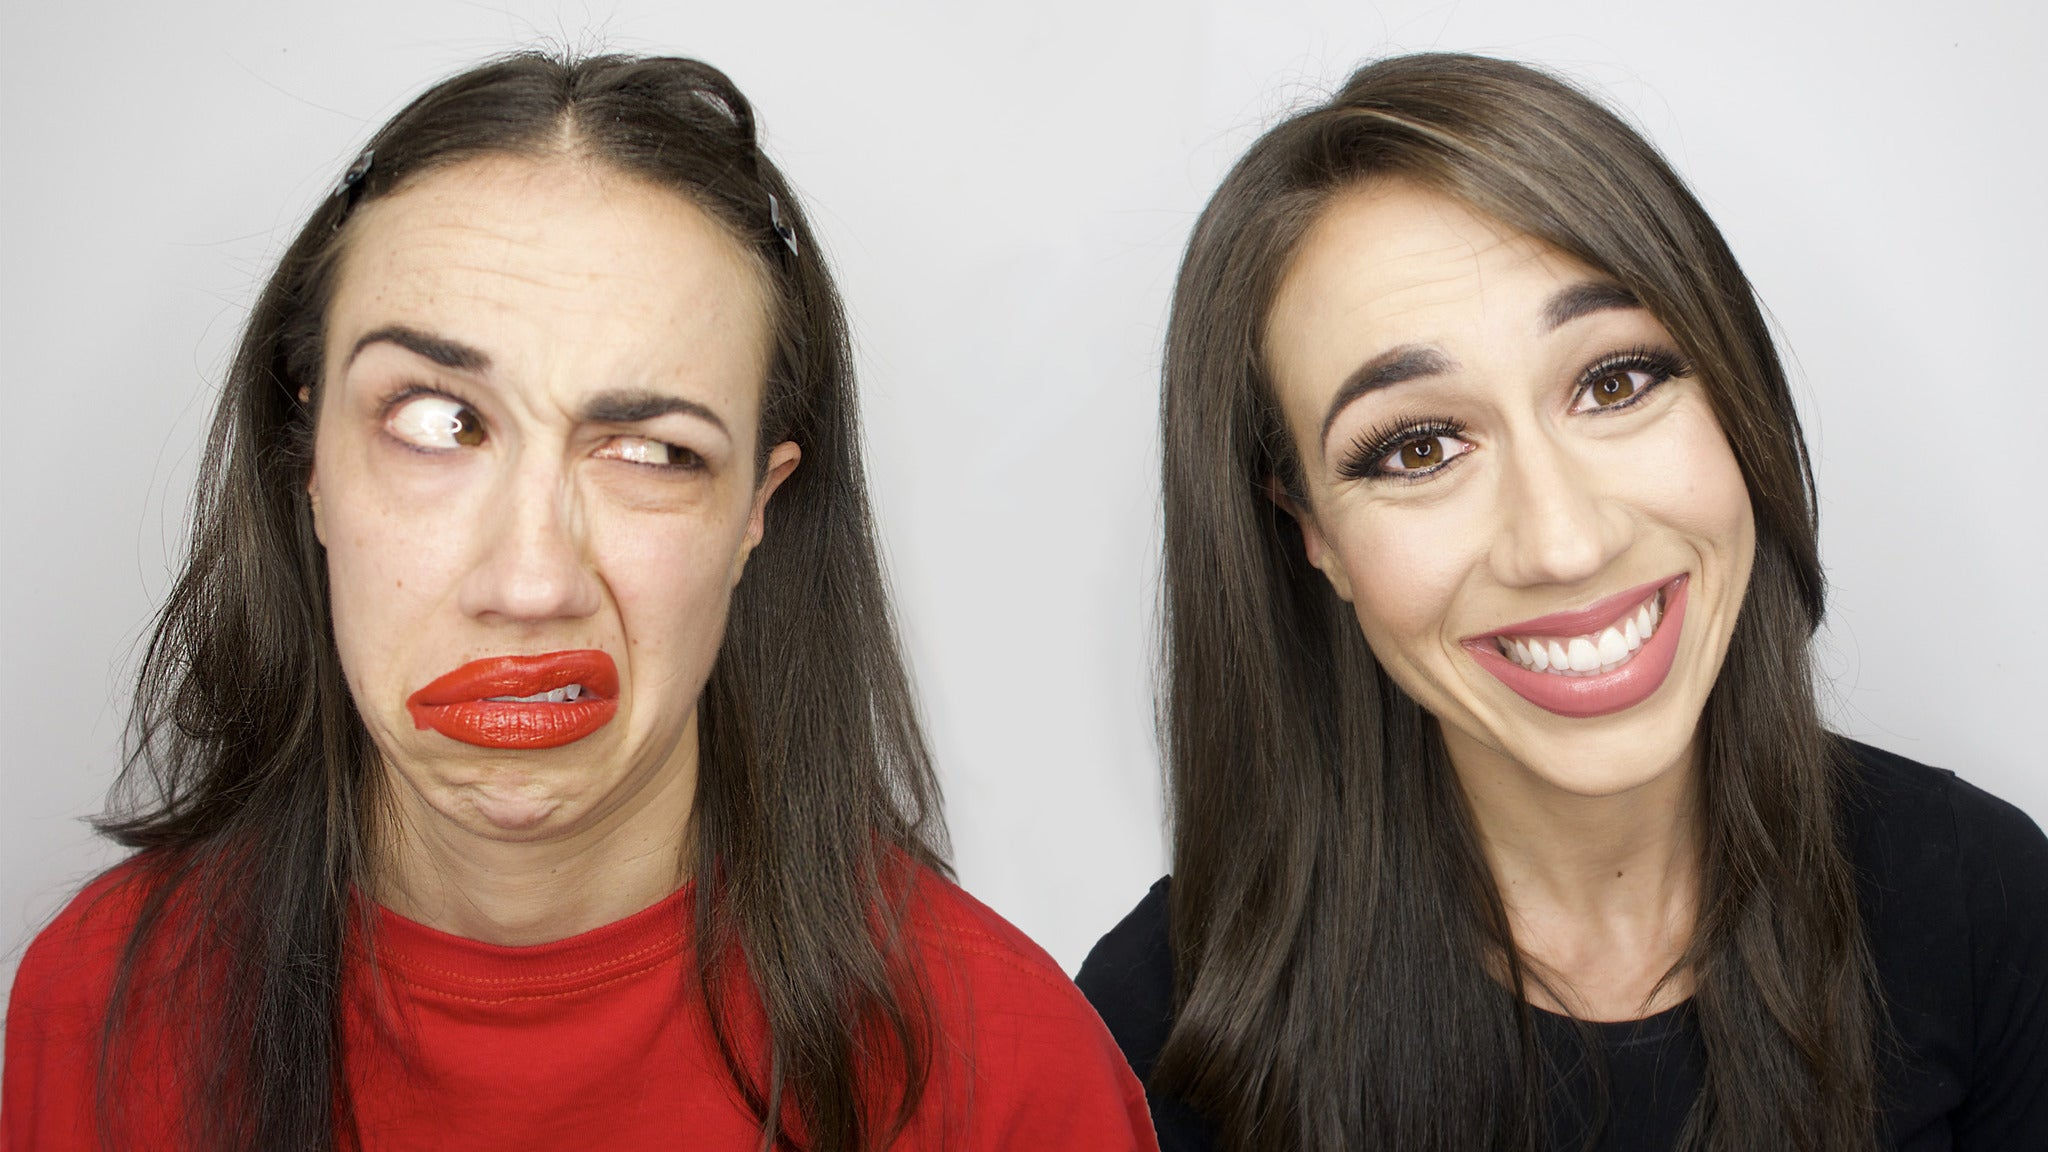 Miranda Sings Live ...No Offense at Adler Theatre